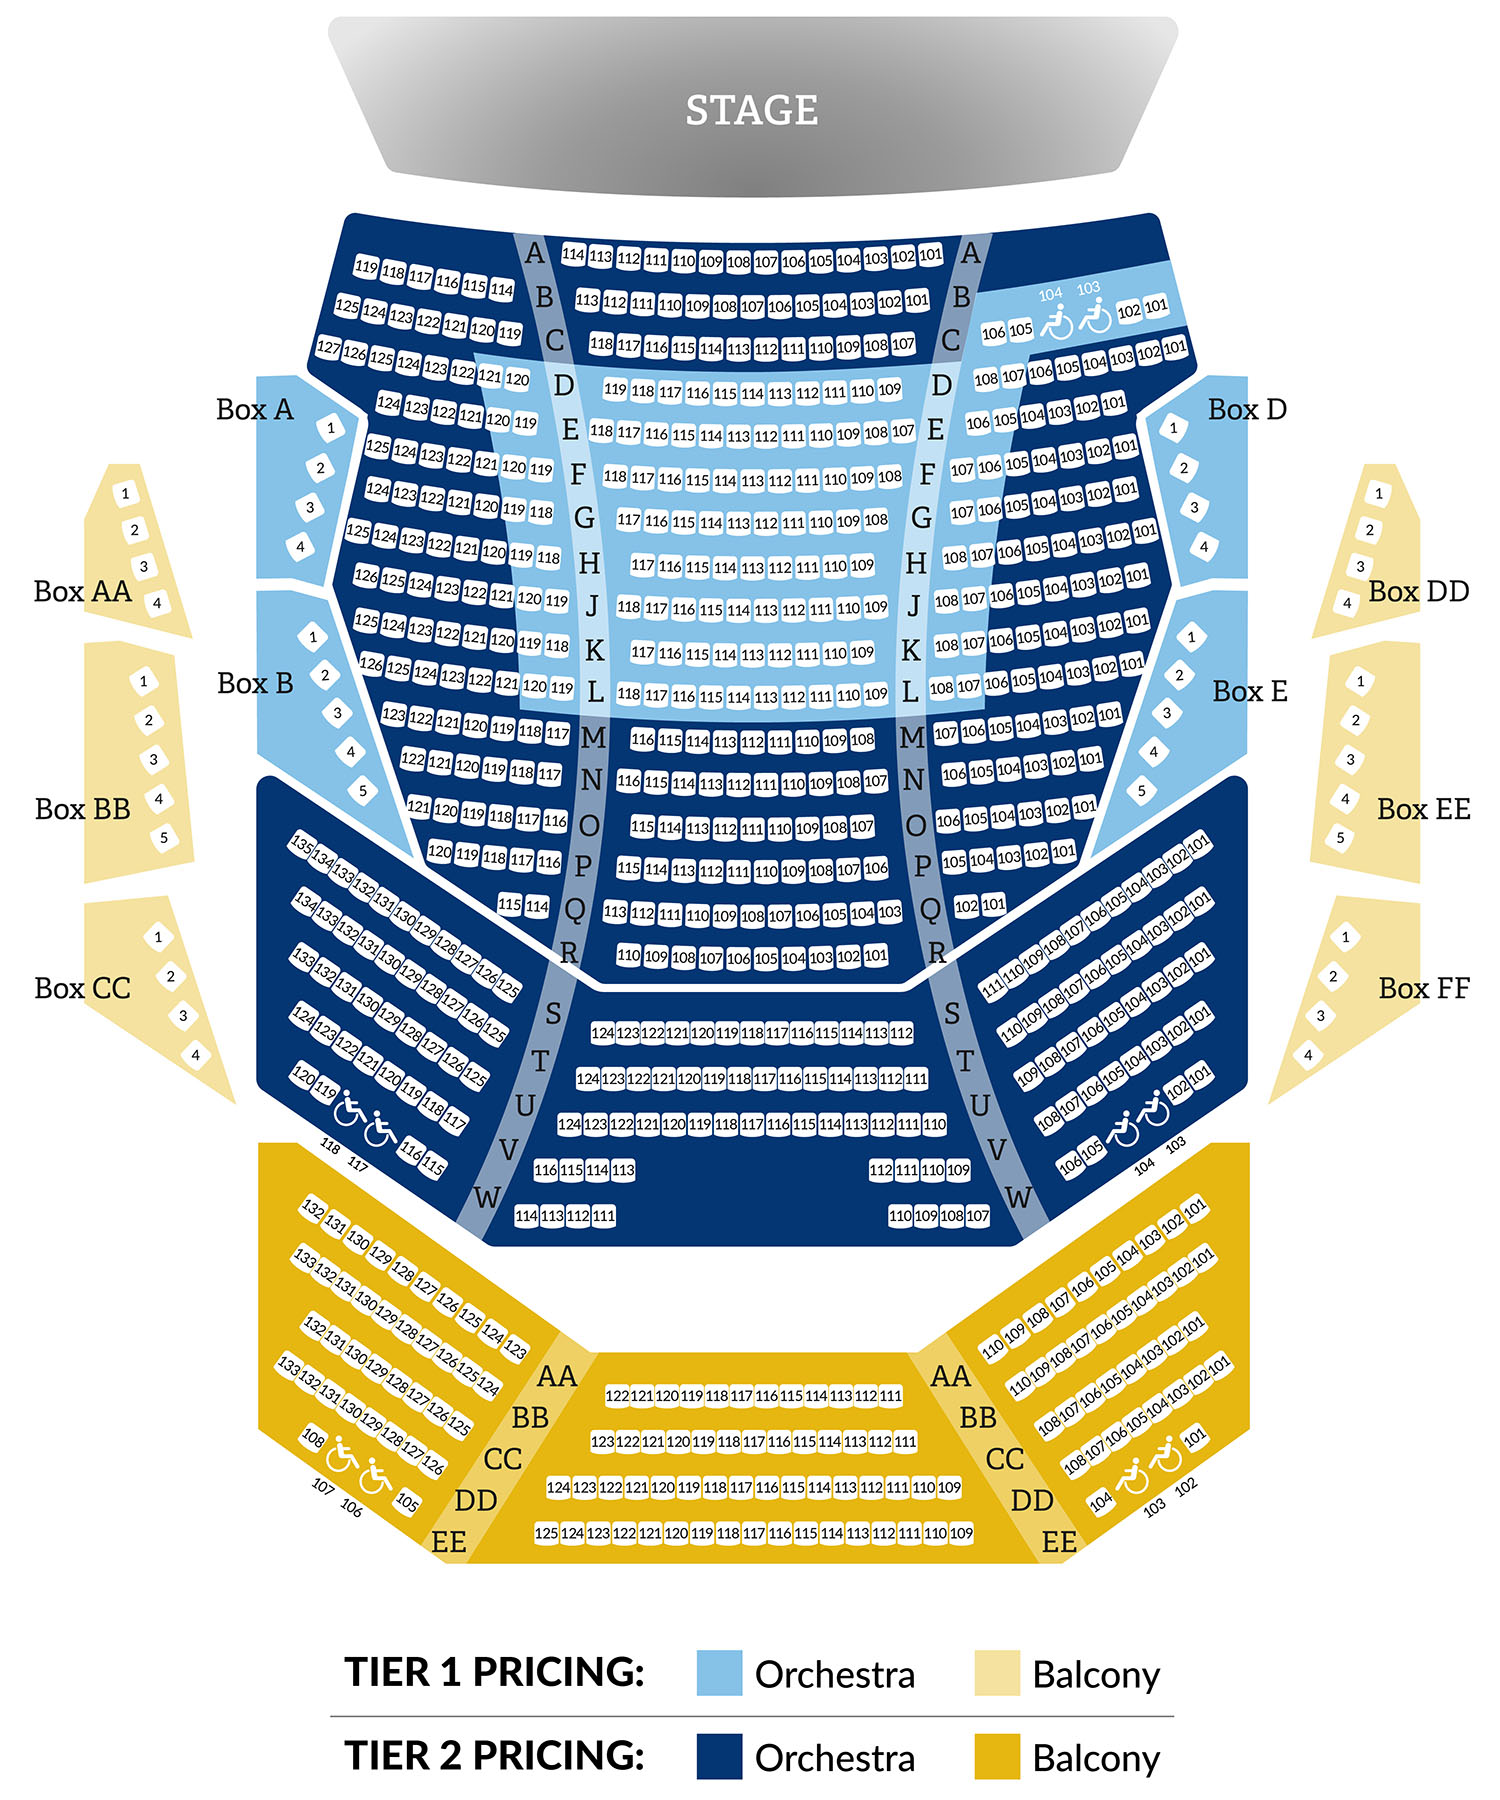 Coughlin Theater map for Orchestra and Balcony seating